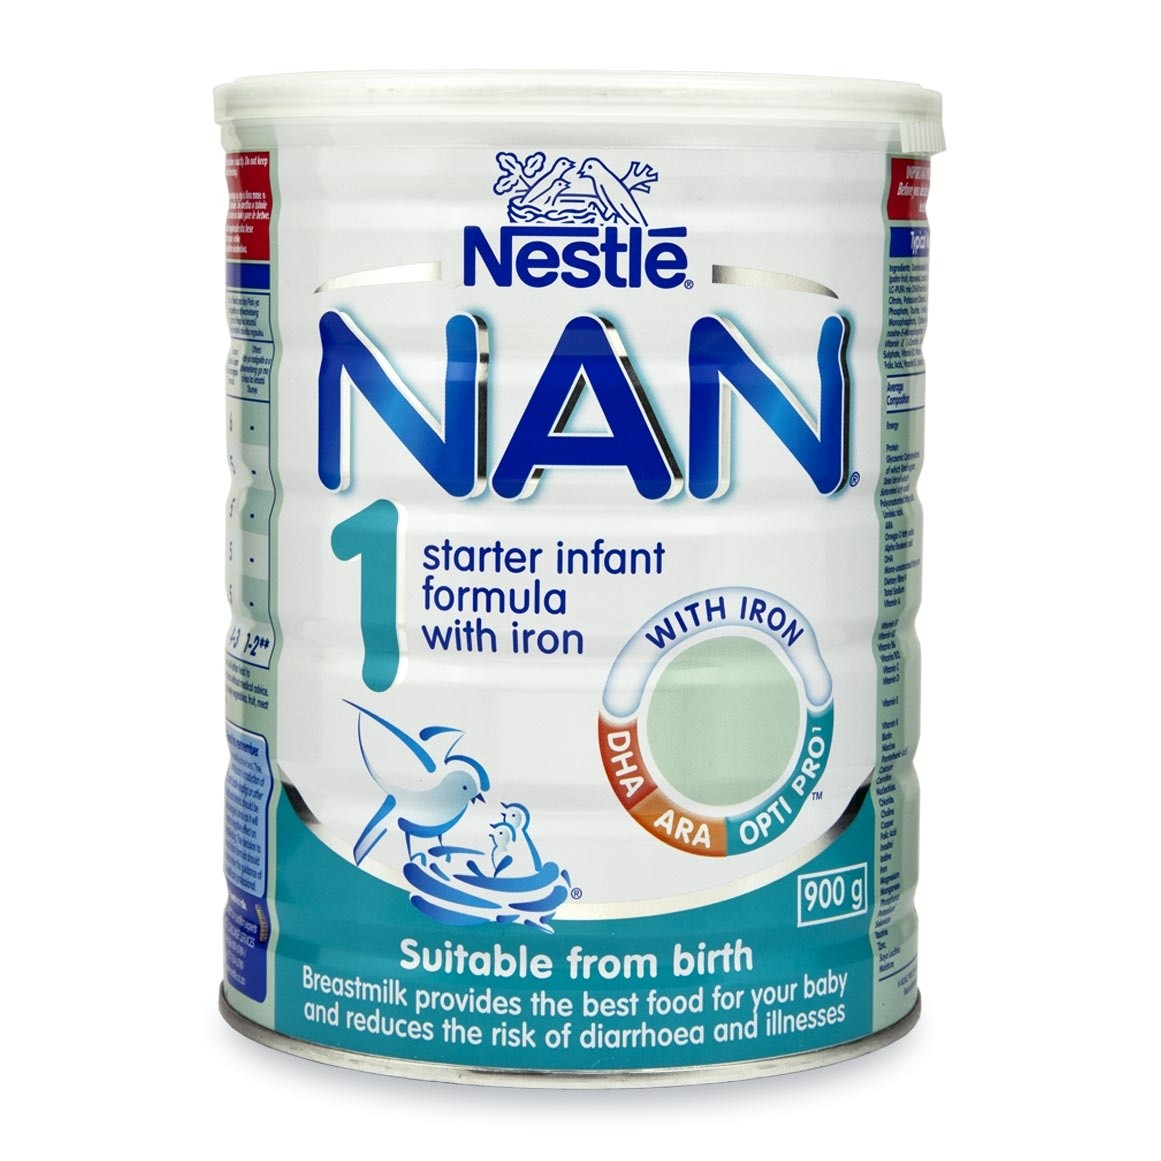 infant formula and nestle hasincreasing instances